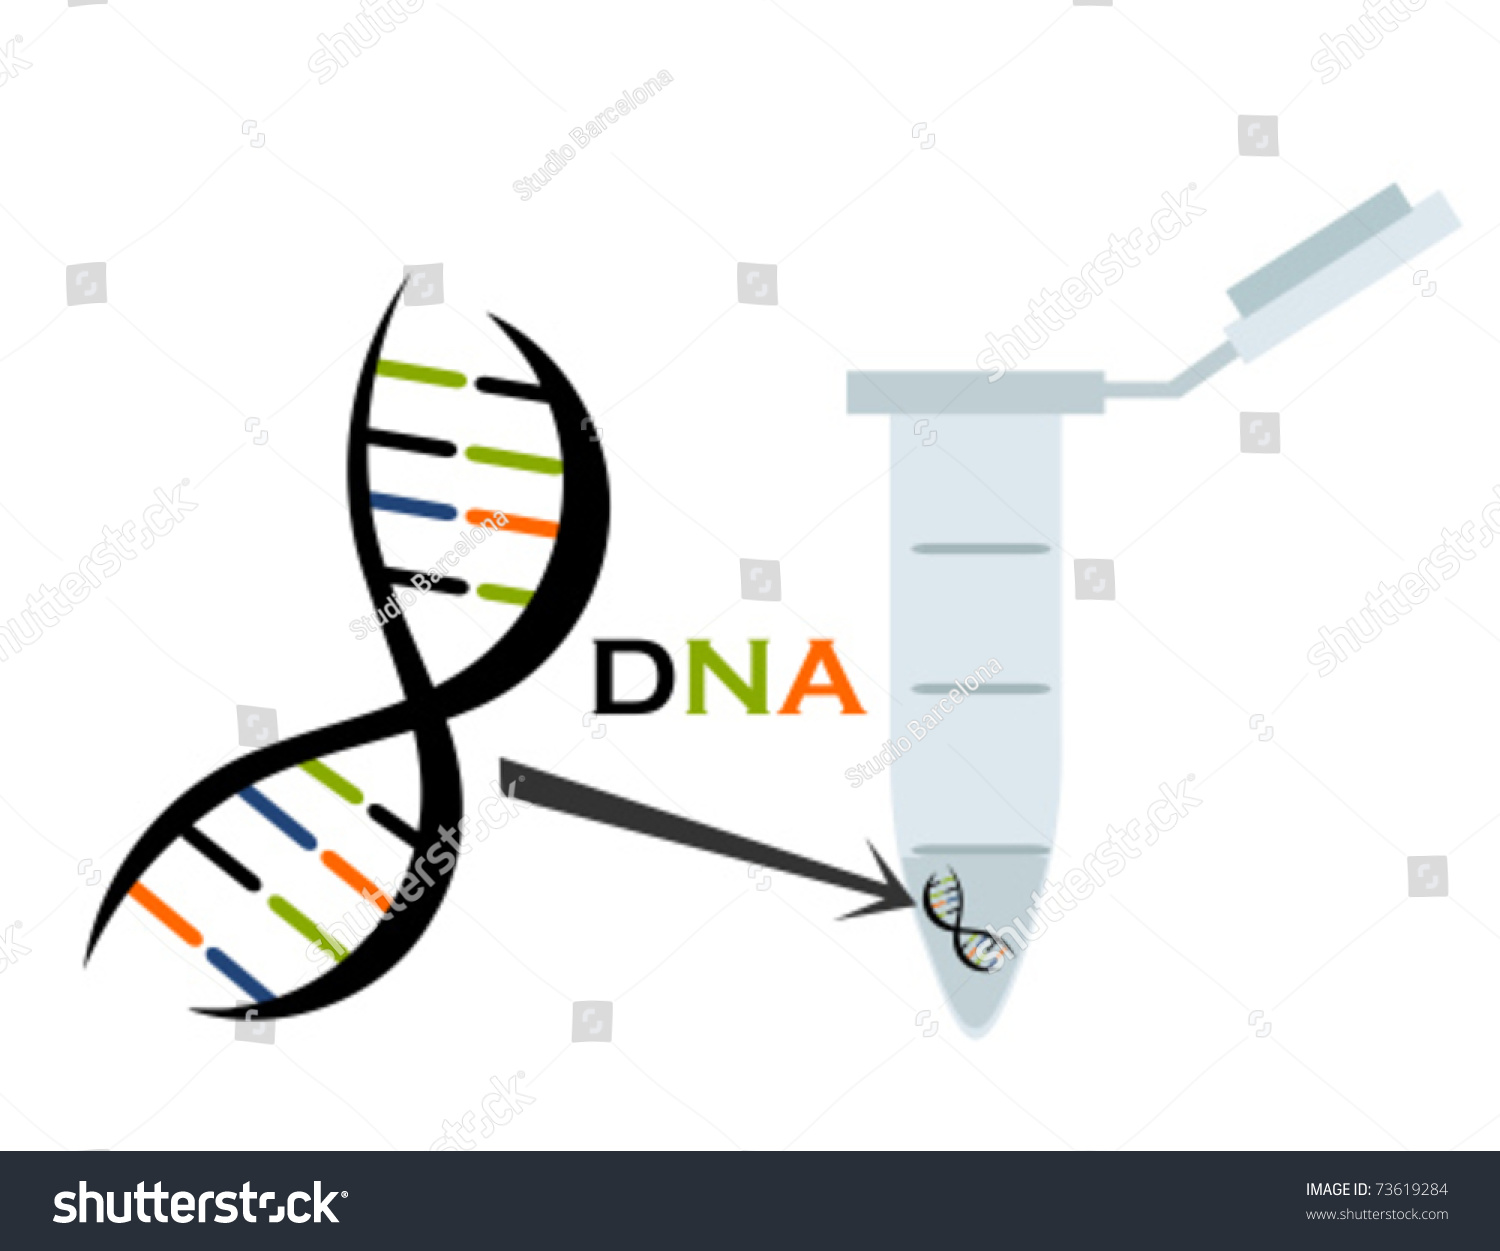 molecular biology quiz An introduction to molecular biology/quiz time from wikibooks, open books for an open world molecular biology jump to navigation jump to search.